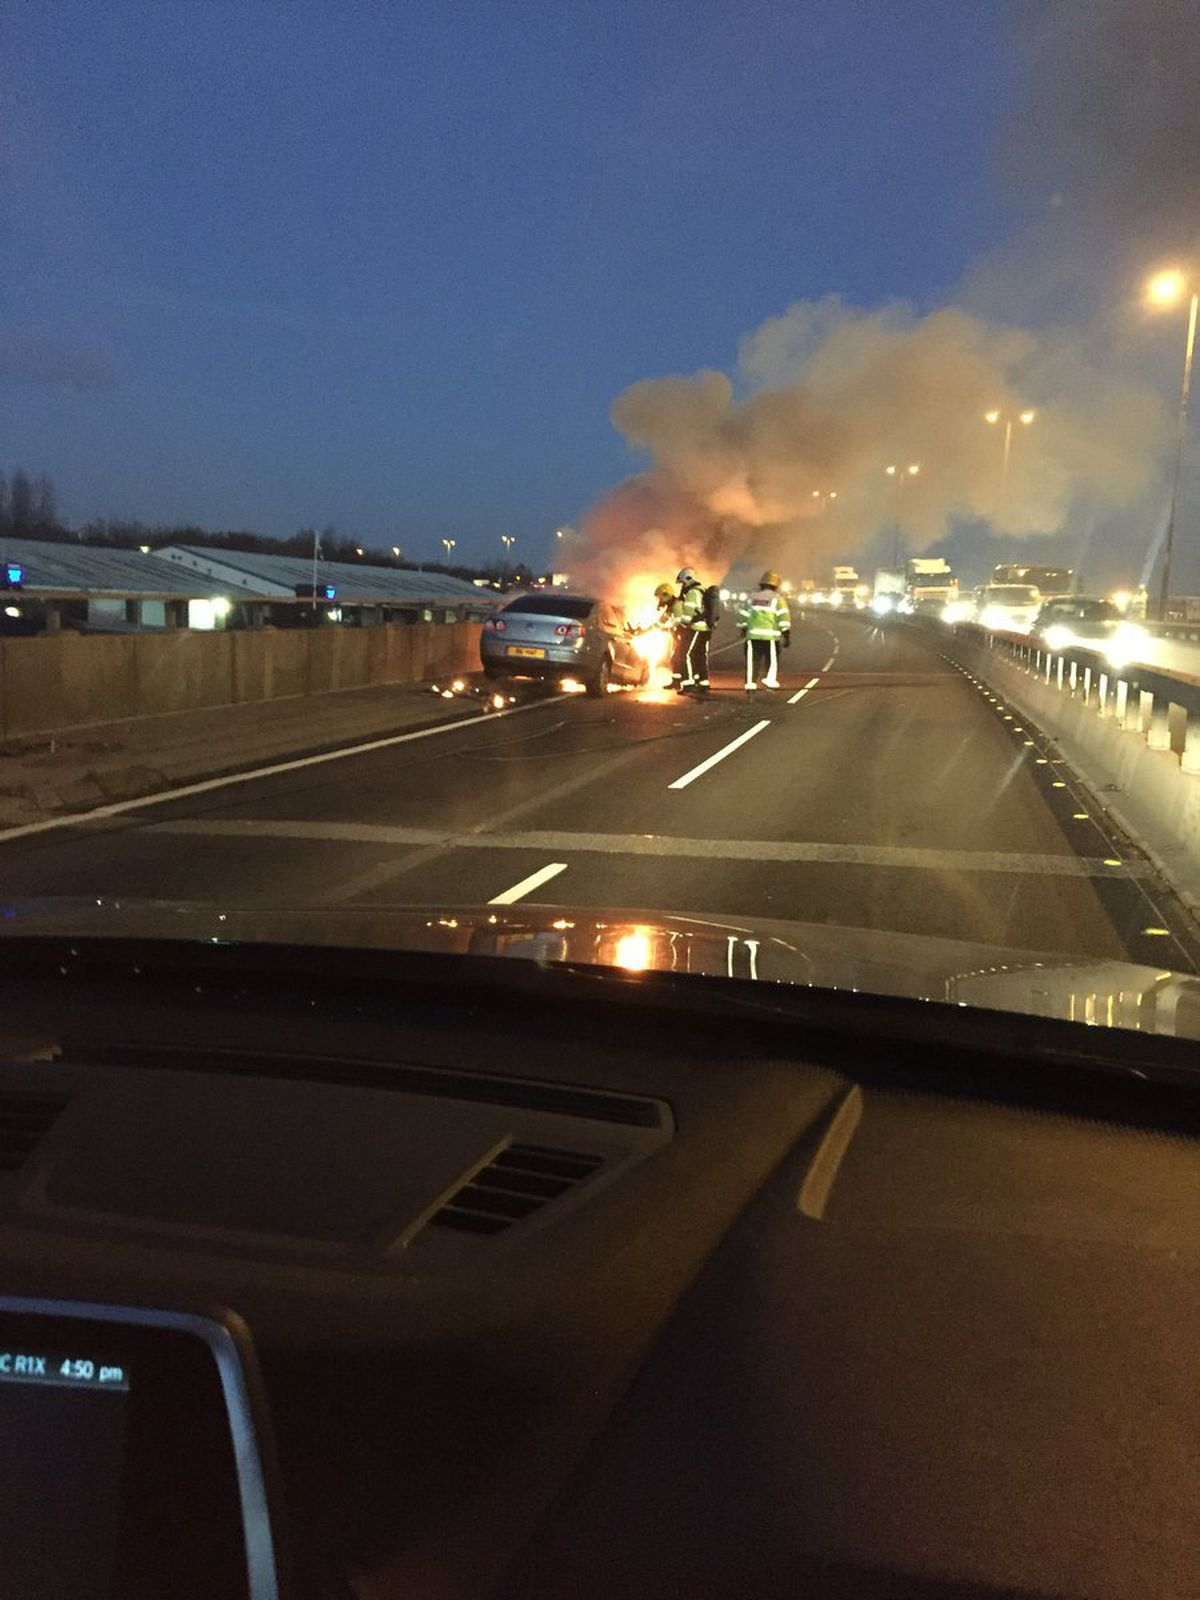 The car fire. Credit: @WoodyFC13